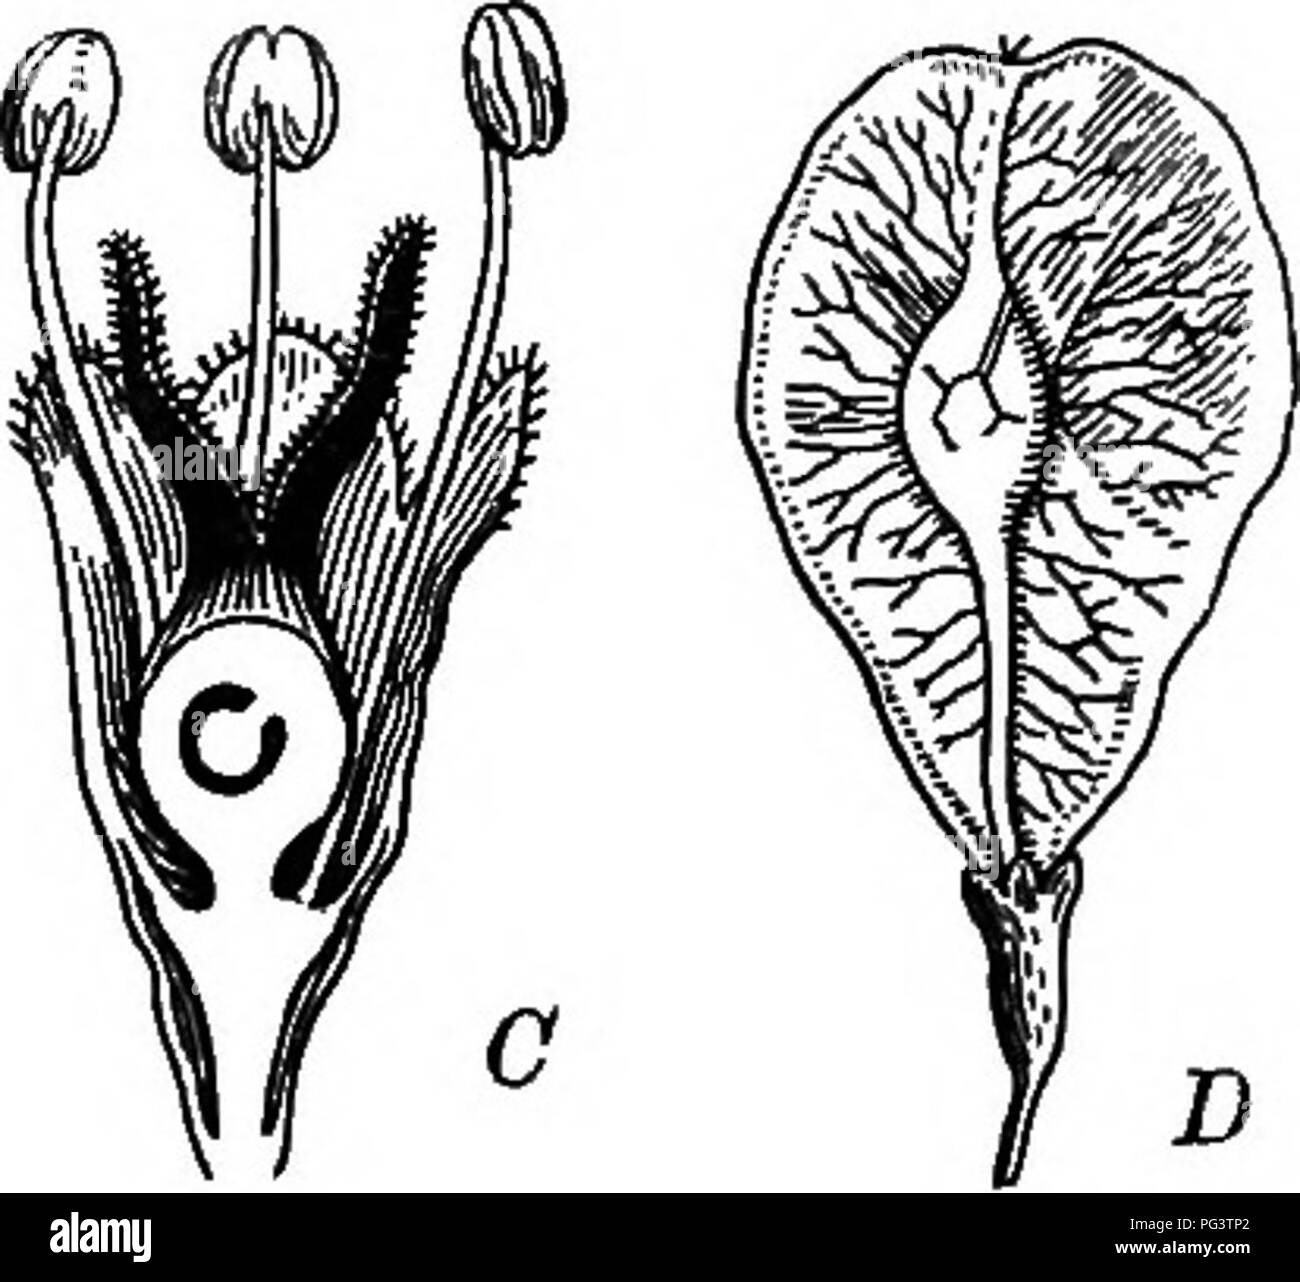 . Foundations of botany. Botany; Botany. Fig. 9. — Ulmus campestris. At a flowering twig ; B, a flower; C, longitudinal section of a flower; jD, a fmit. I. ULMUS, L. Trees with straight-veined, unsymmetrical, doubly serrate leaves; stipules early deciduous. Flowers perfect, calyx bell-shaped, 4-9-cleft. Stamens slender, protruding. Ovary compressed, styles 2, spreading. Fruit membranaceous, flat, winged on the edge.*. Please note that these images are extracted from scanned page images that may have been digitally enhanced for readability - coloration and appearance of these illustrations may  - Stock Image